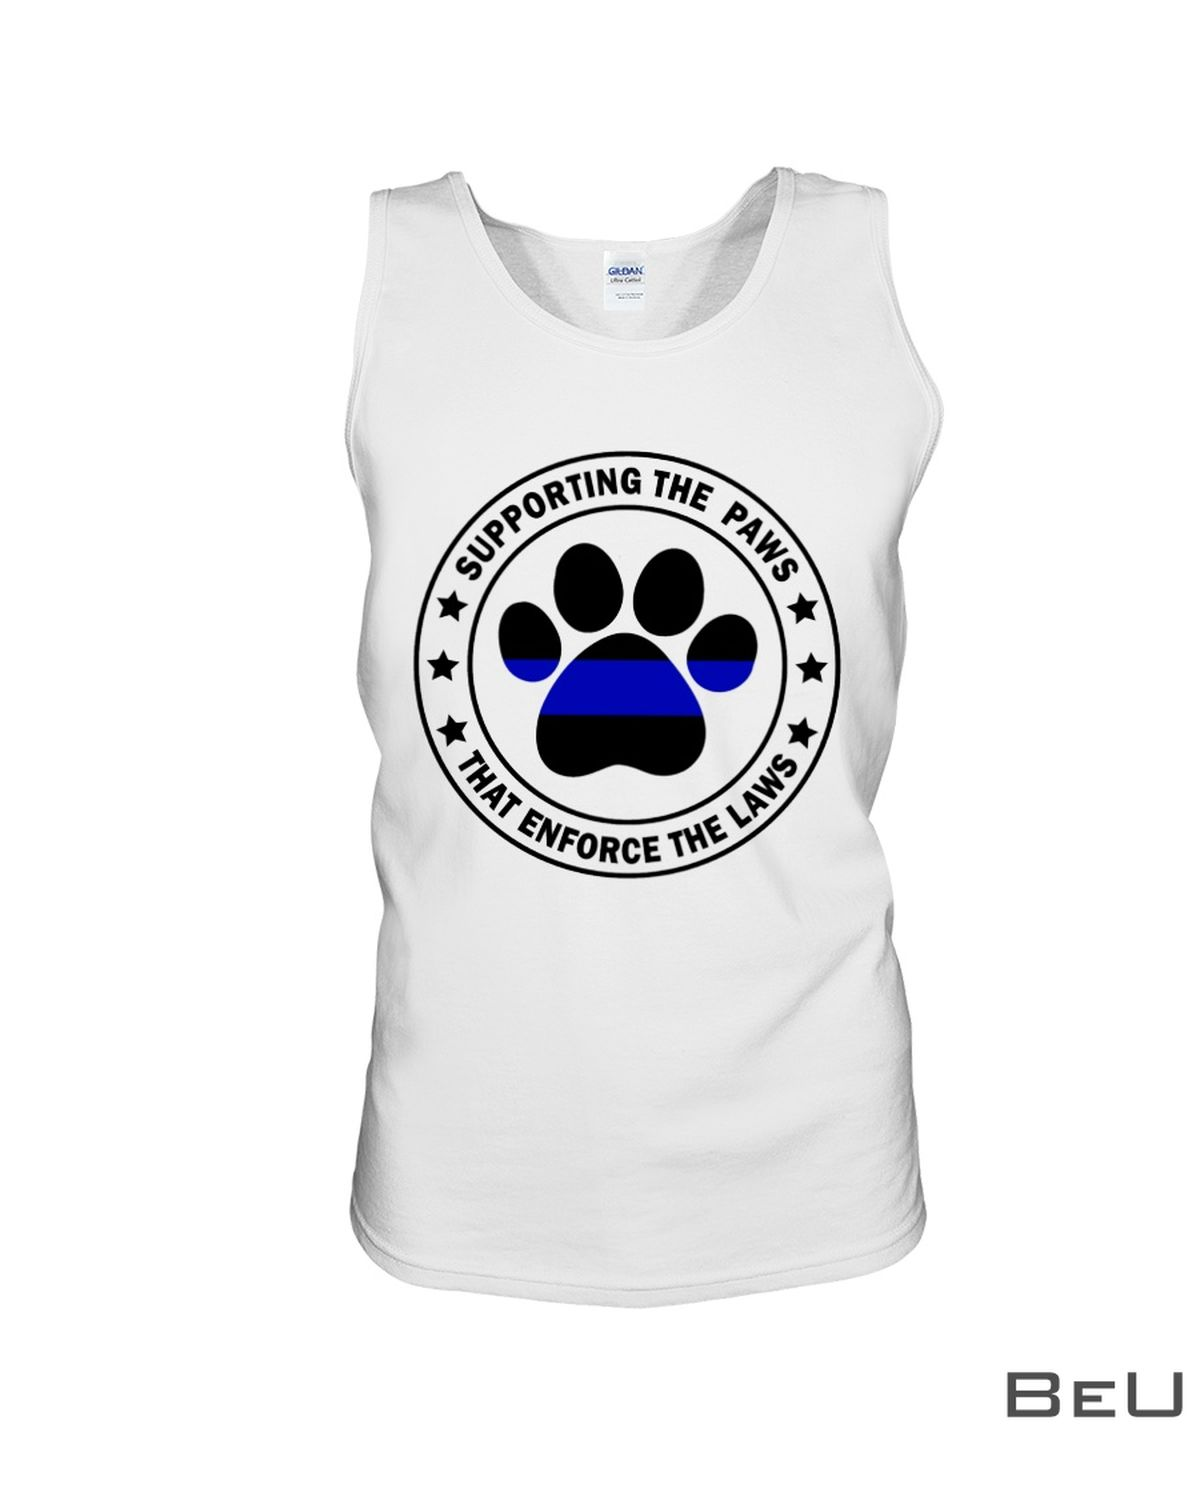 Supporting The Paws That Enforce Th Laws Shirt c